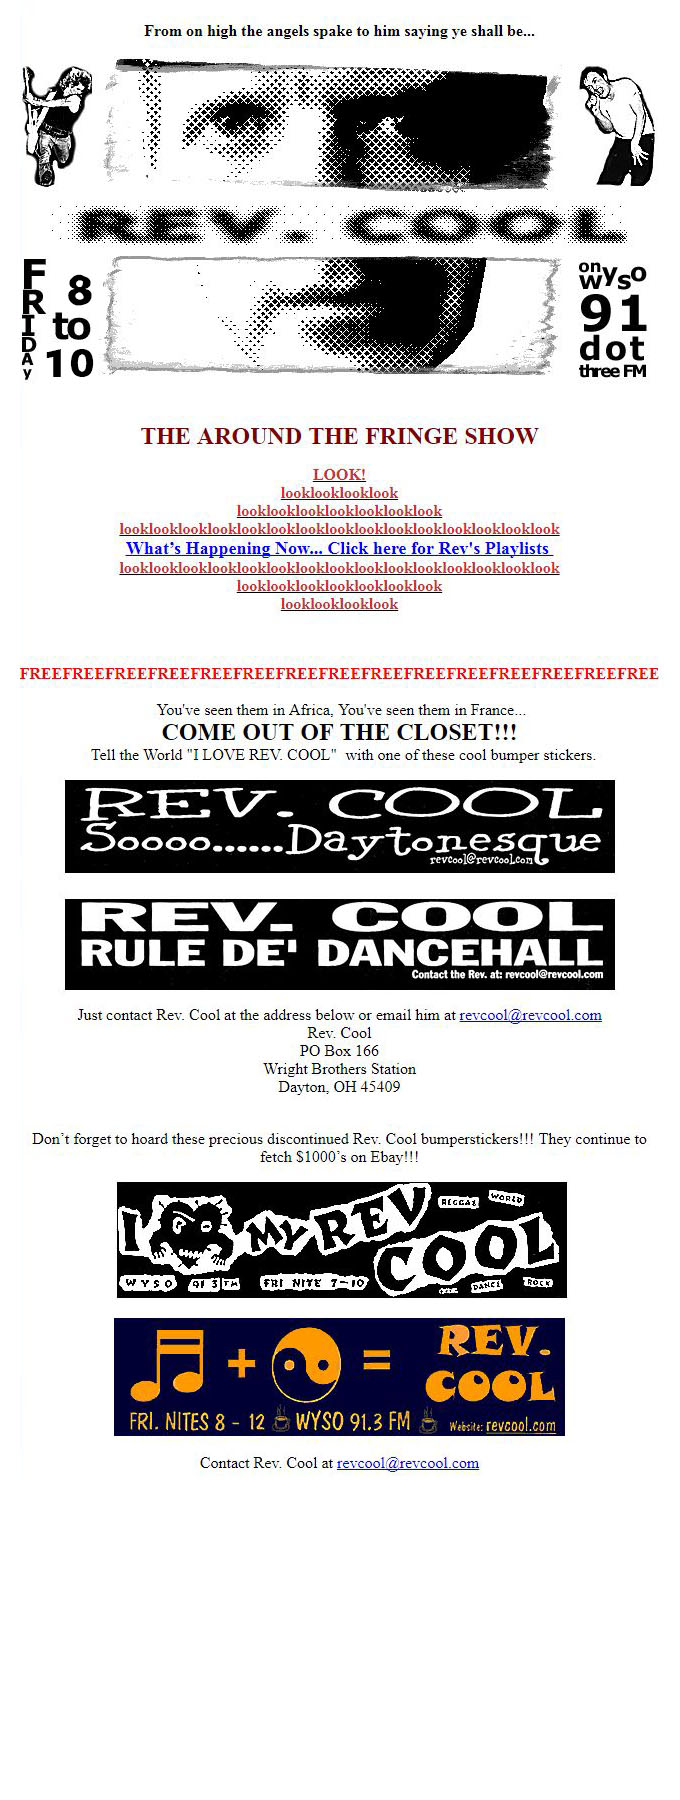 Contact Revcool at WYSO.ORG